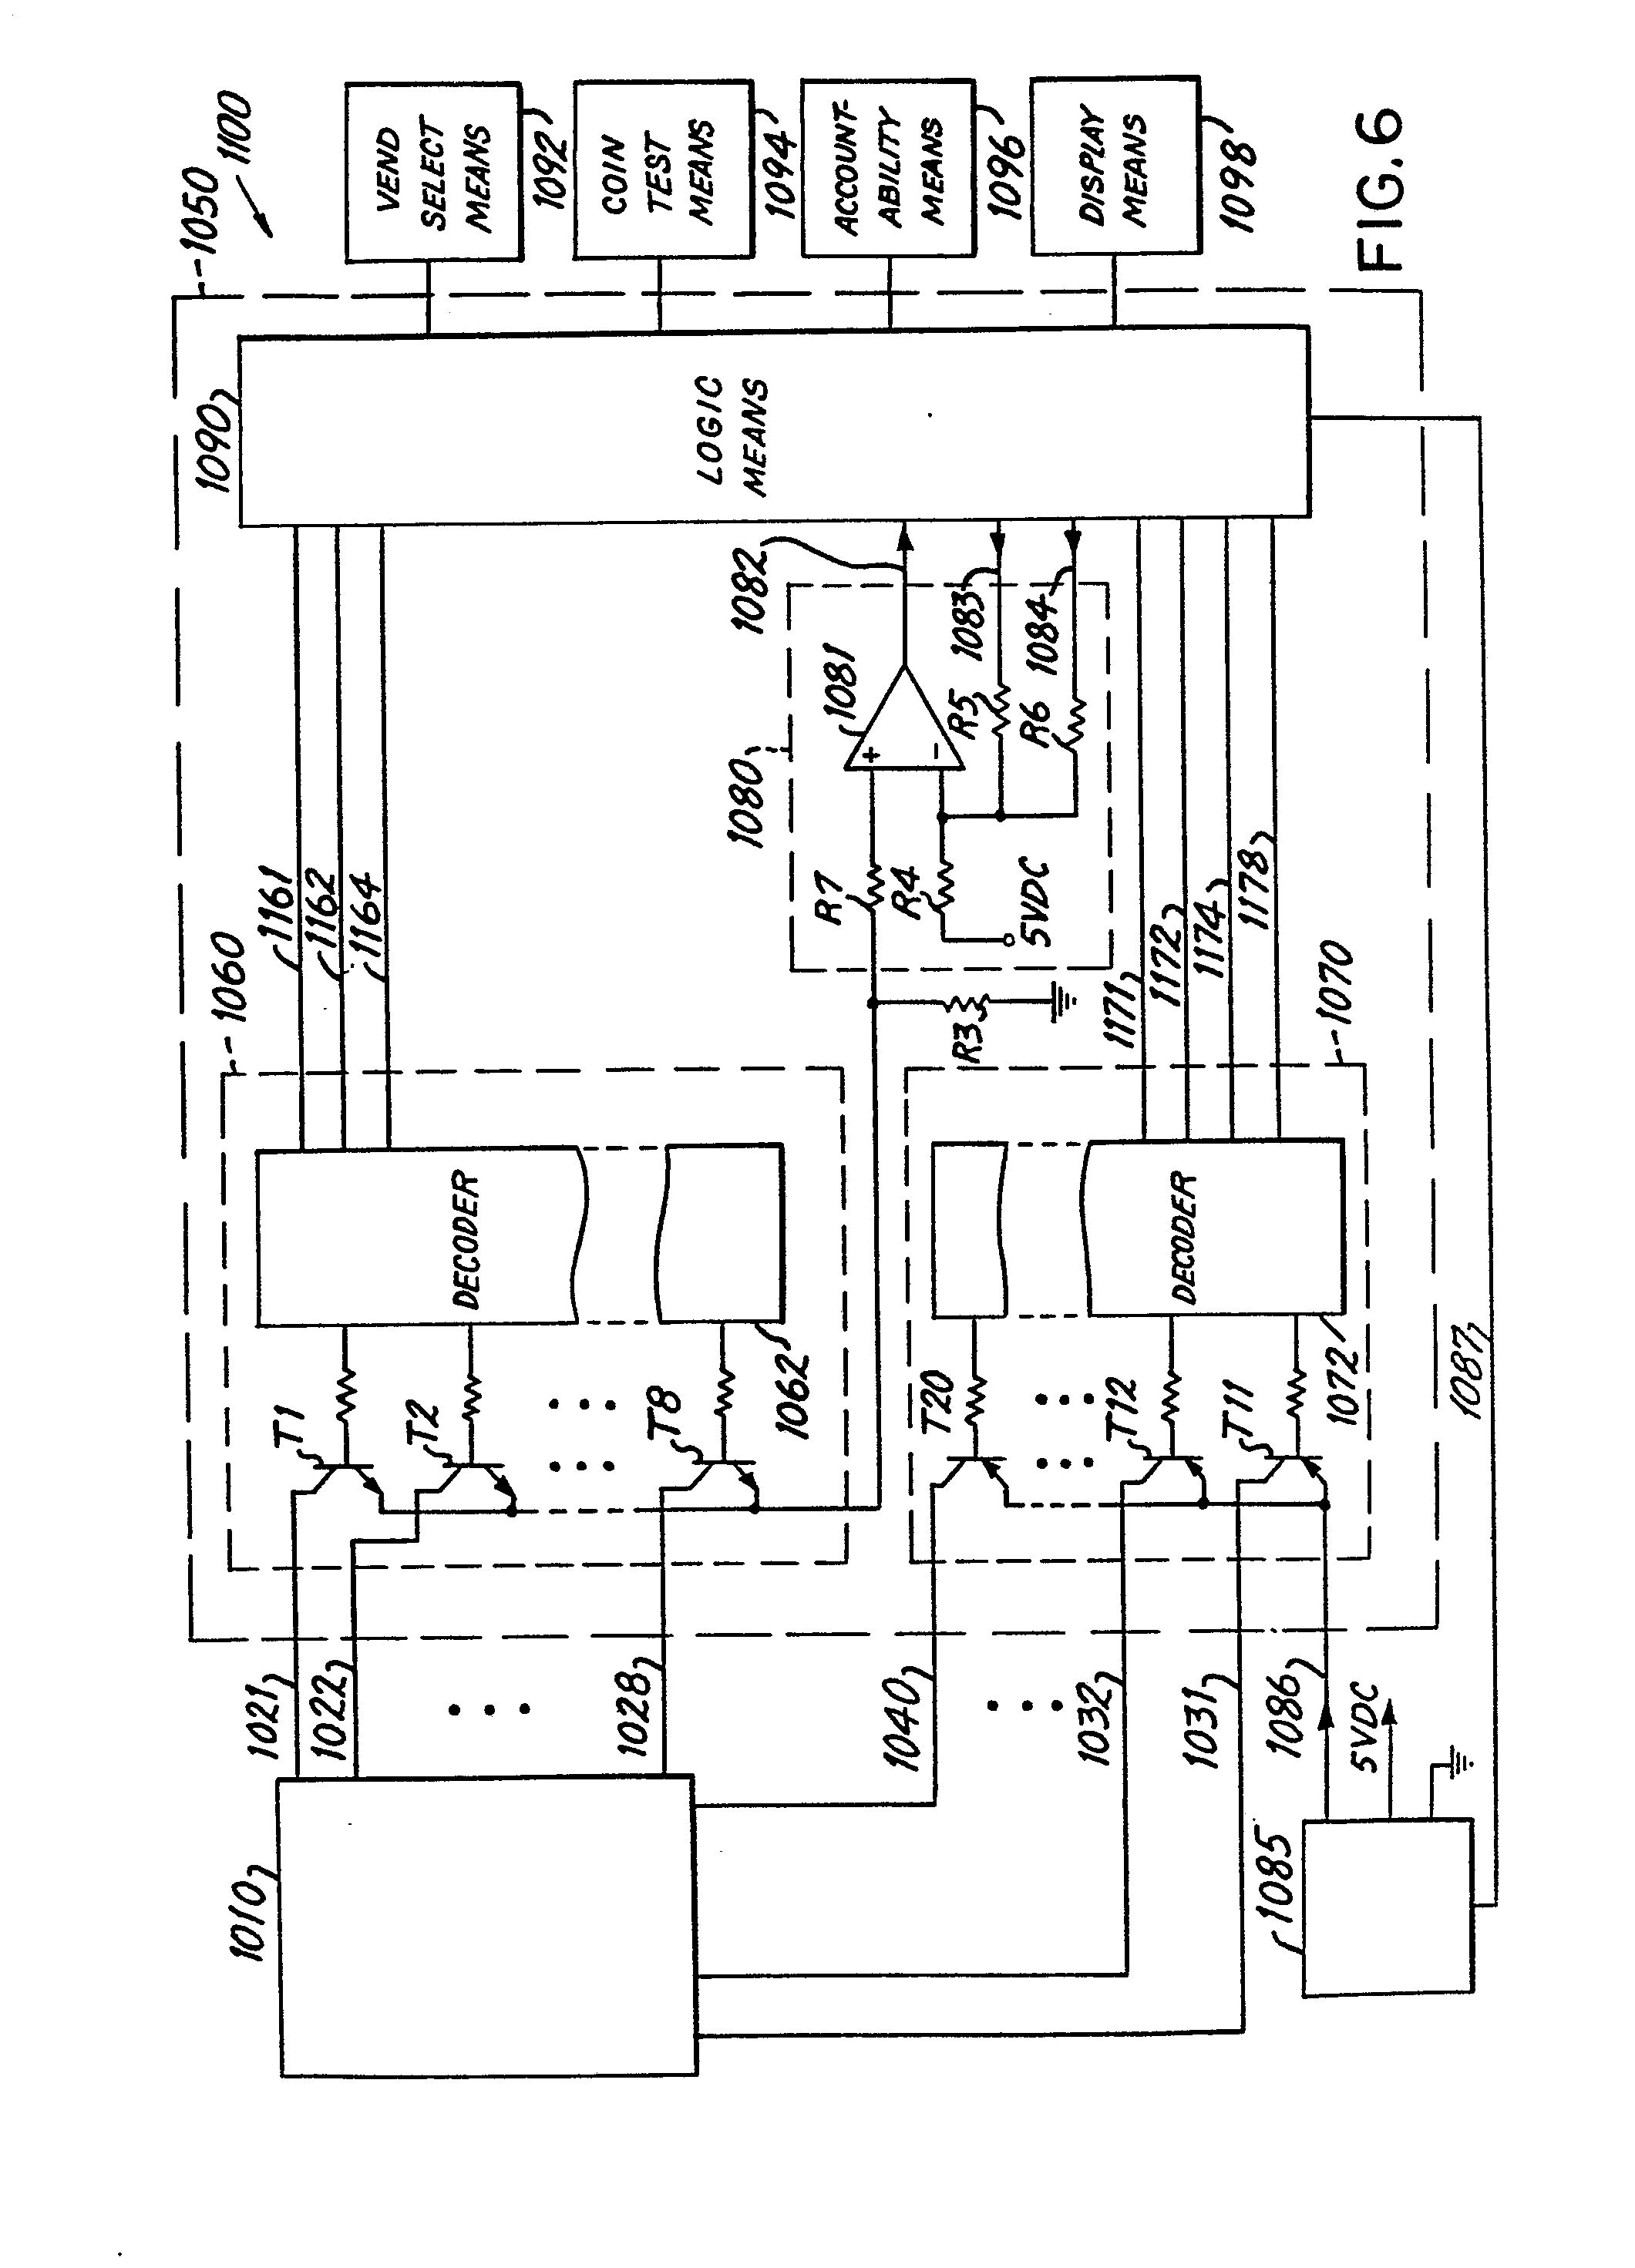 imgf0003 patent ep0063426a2 vending machine control and diagnostic narco 810 wiring diagram at alyssarenee.co